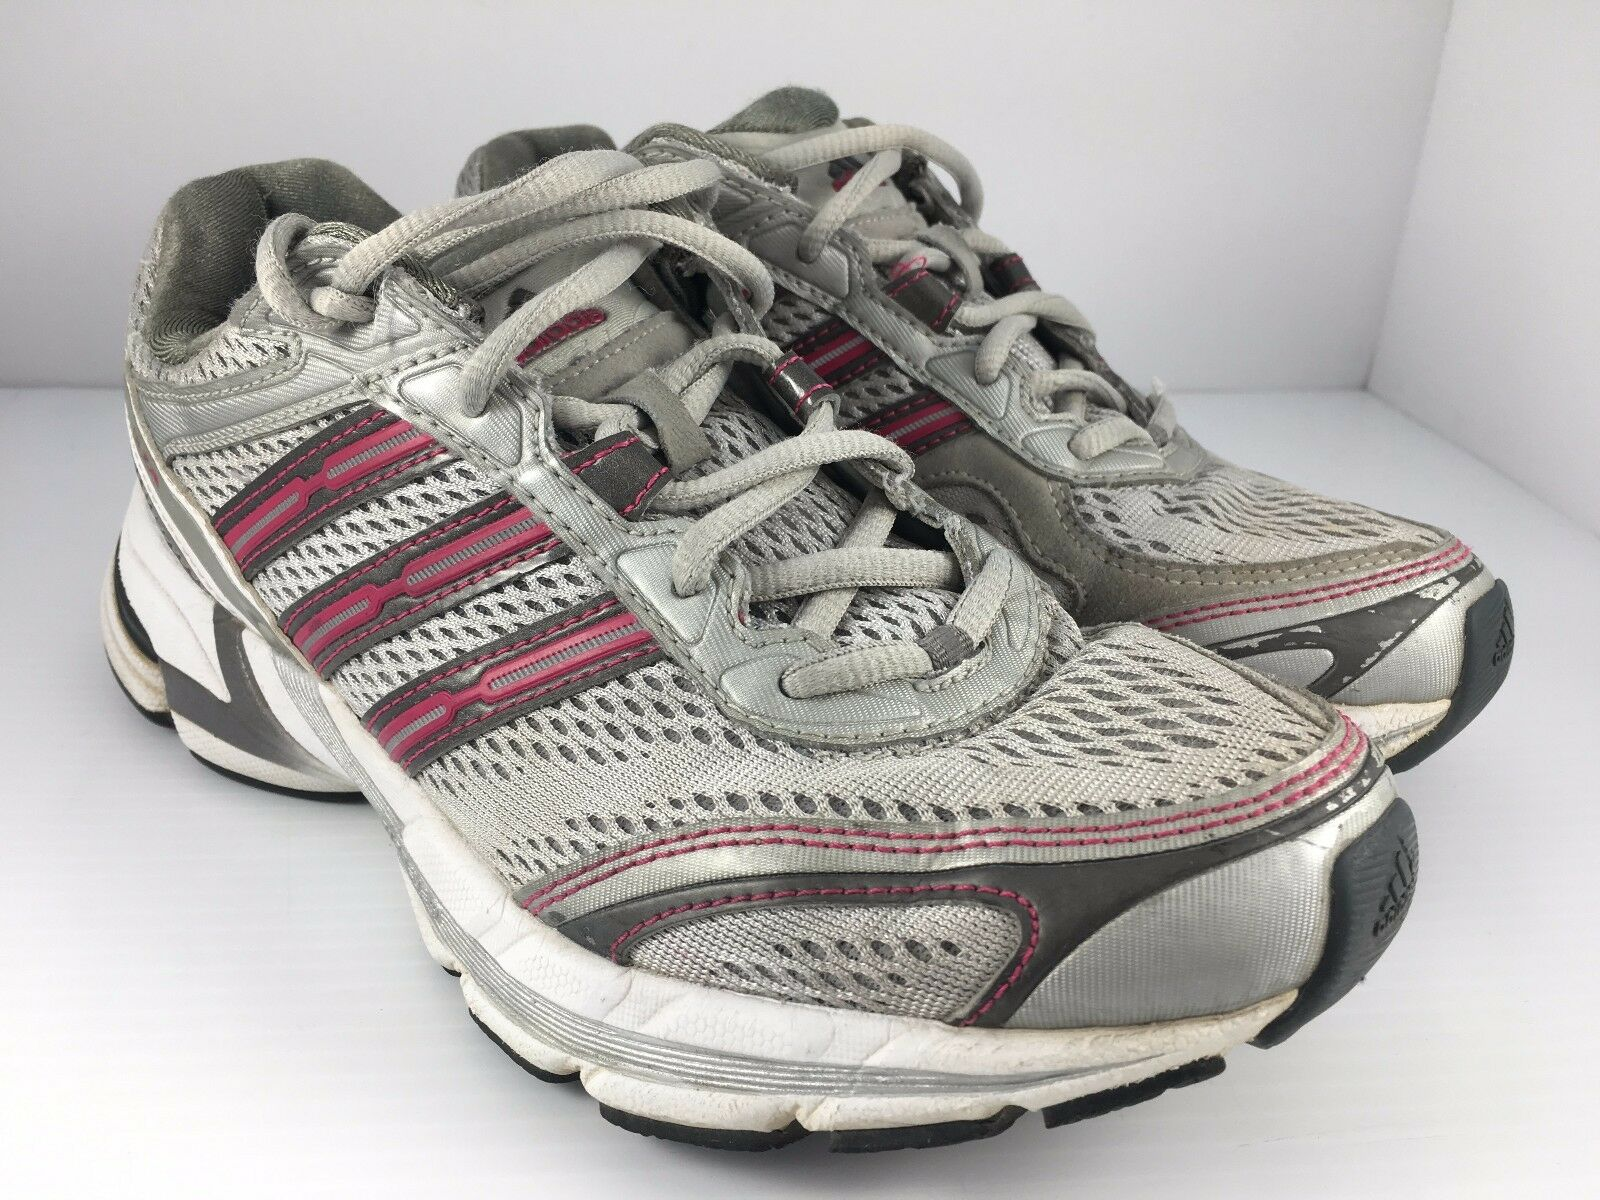 Adidas Supernova Glide 2 Women US 8 Silver Gray + Pink Athletic Running Shoes